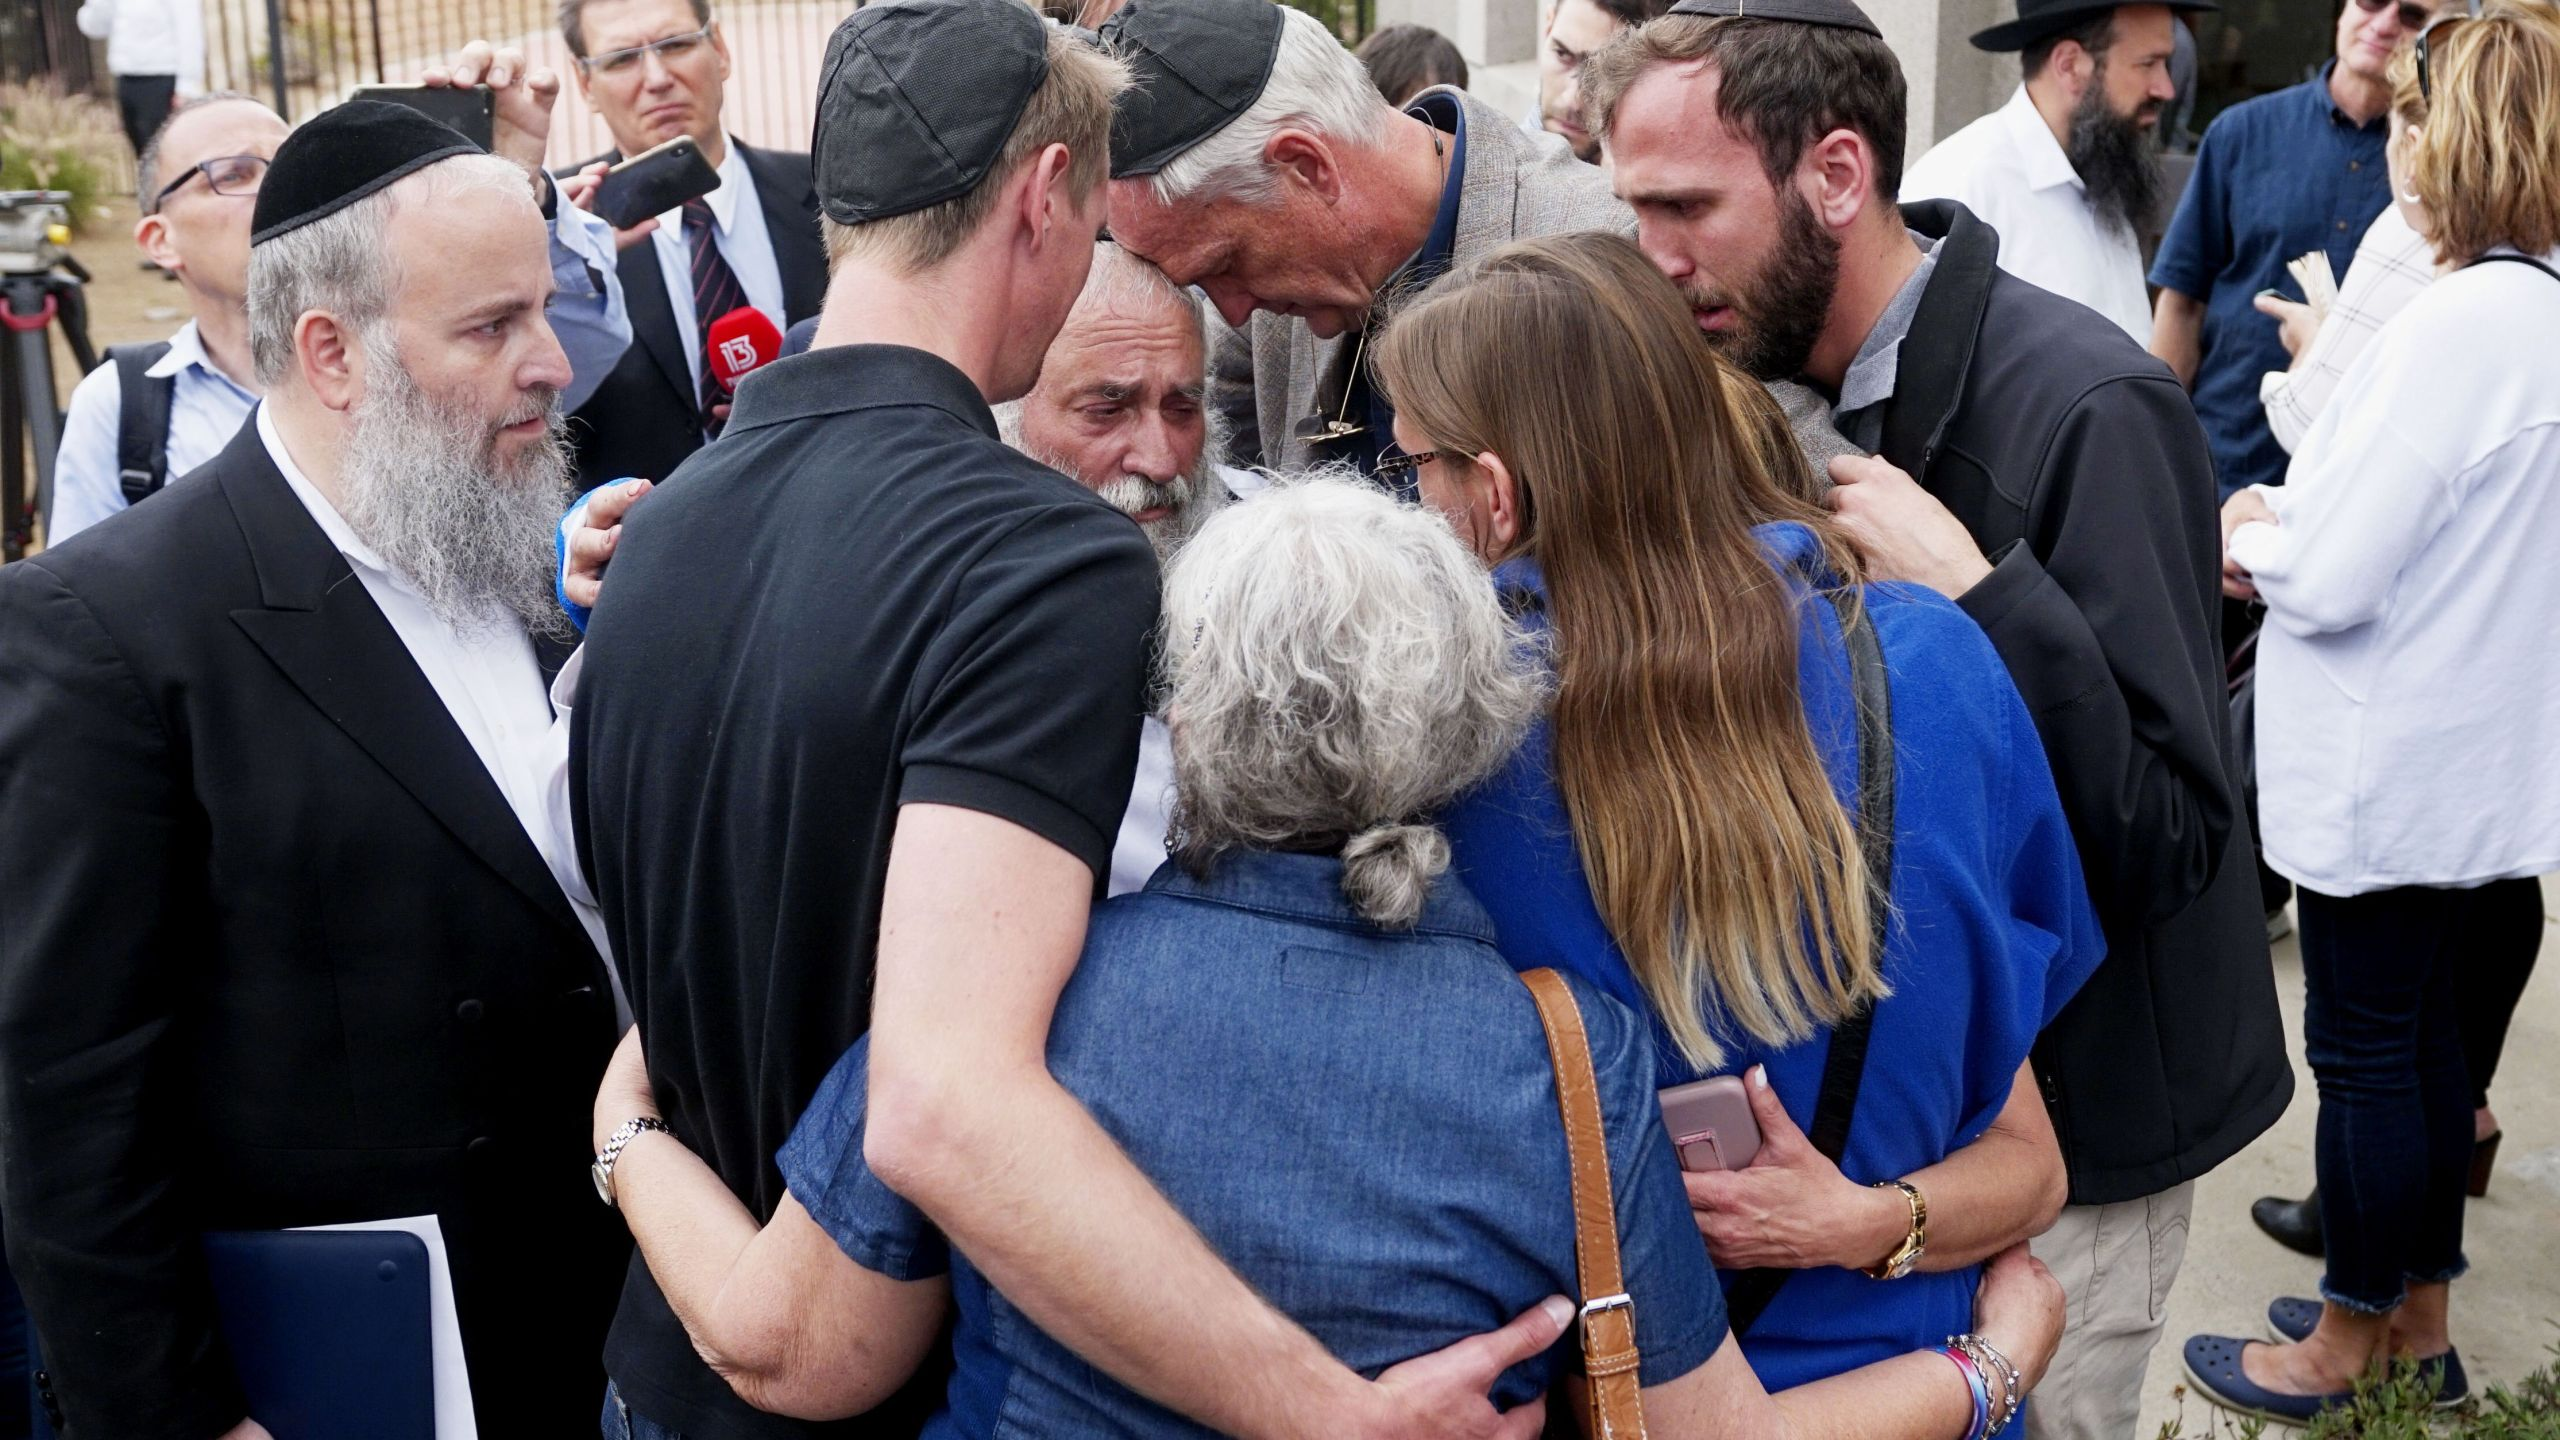 Executive Director Rabbi Yisroel Goldstein (center), who was shot in the hands, hugs his congregants after a press conference outside the Chabad of Poway Synagogue on April 28, 2019. (Credit: SANDY HUFFAKER/AFP/Getty Images)